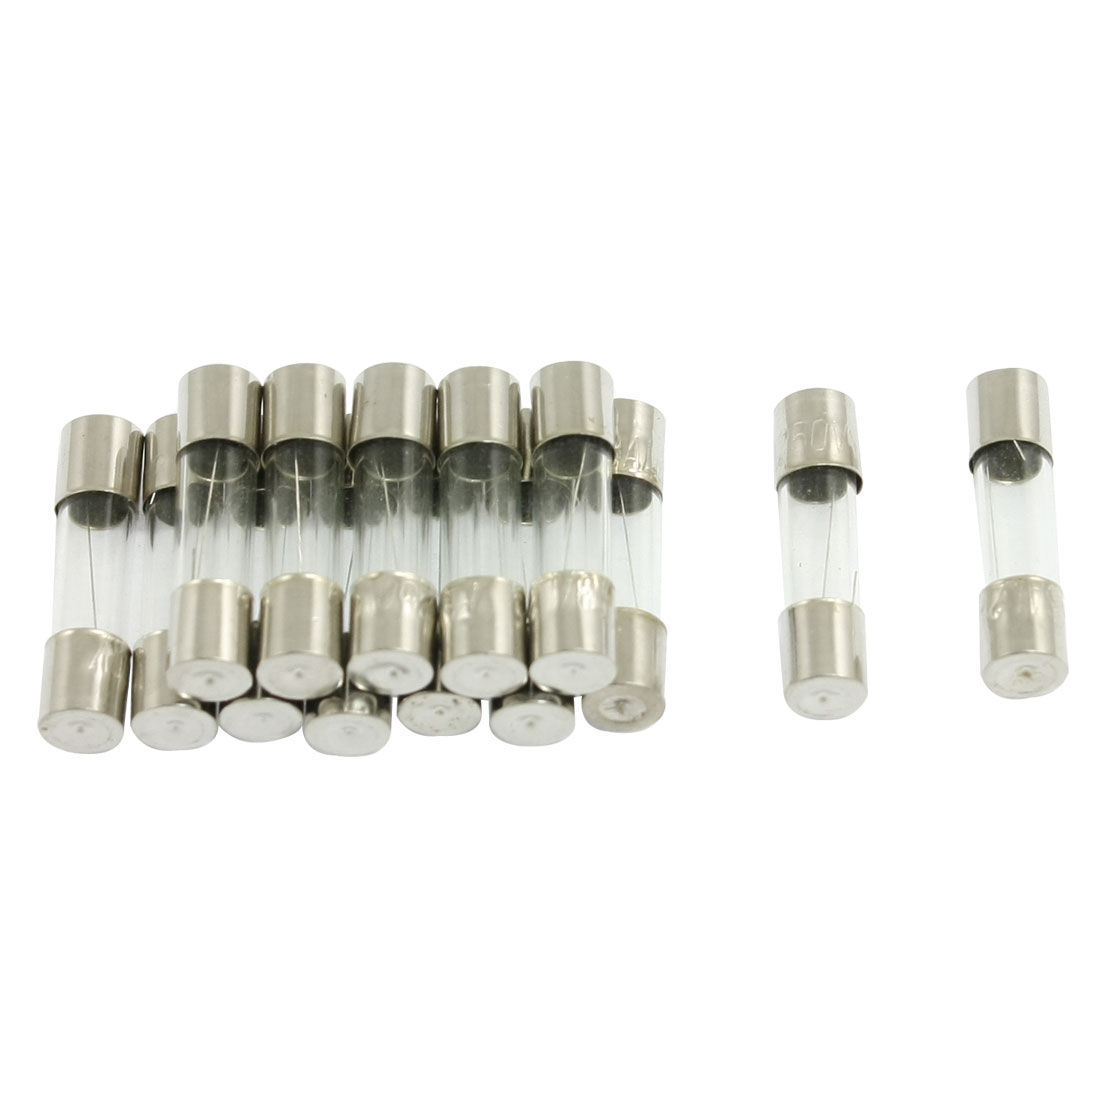 15 Pcs 250V 3A 5mm x 20mm Fast Blow Type Quick Glass Tube Fuses